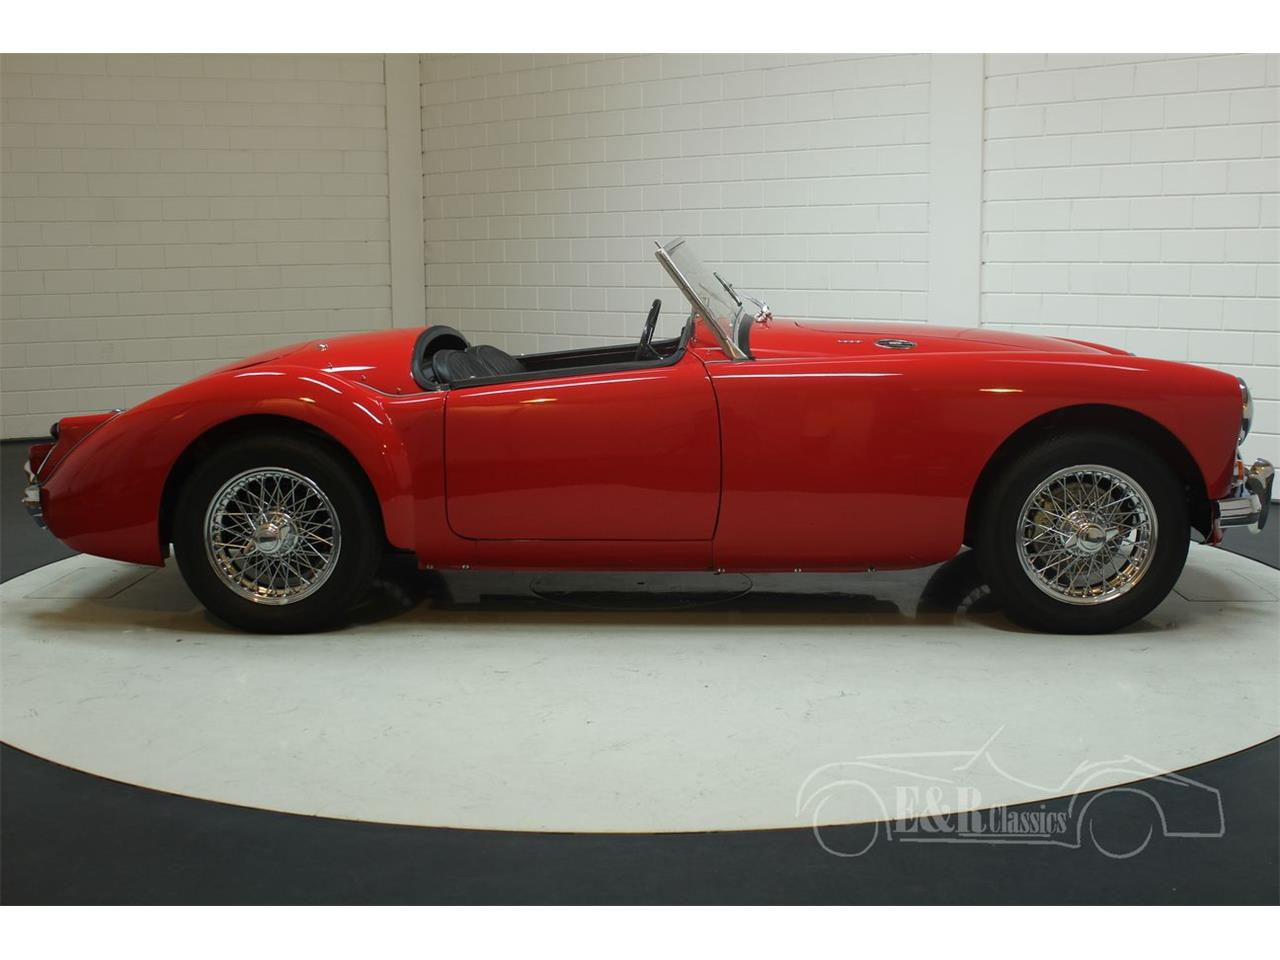 Large Picture of Classic '59 MG MGA located in Waalwijk - Keine Angabe - - $56,500.00 Offered by E & R Classics - PGST